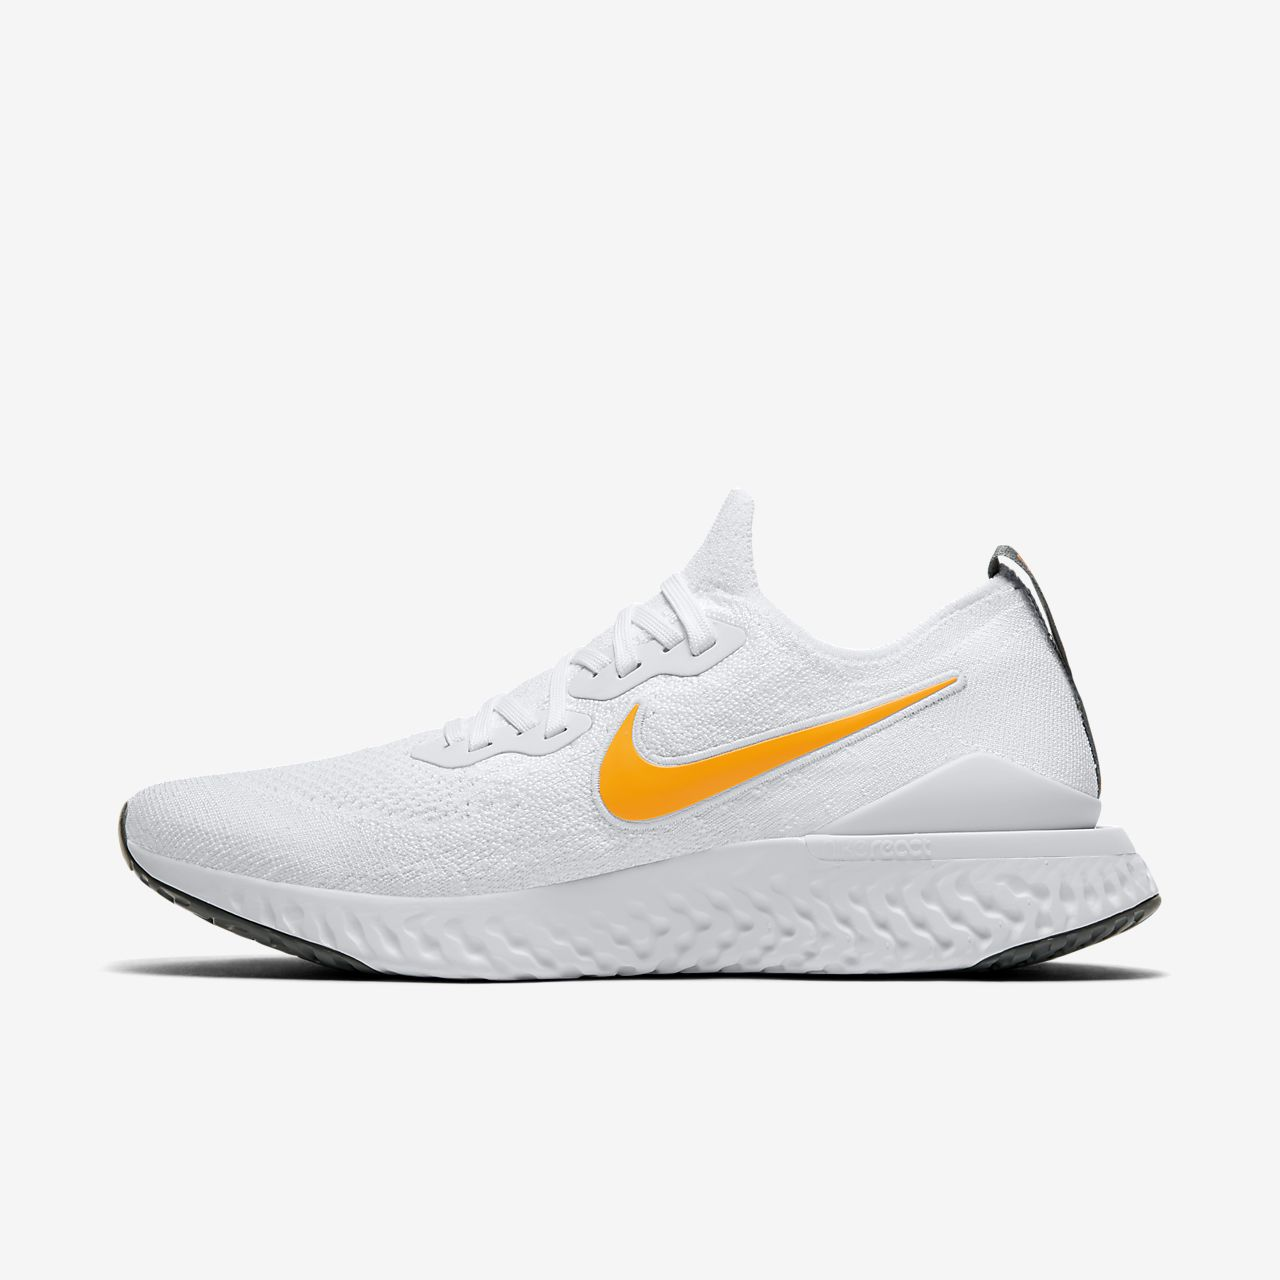 official photos 76123 6a718 Nike Epic React Flyknit 2 Men's Running Shoe